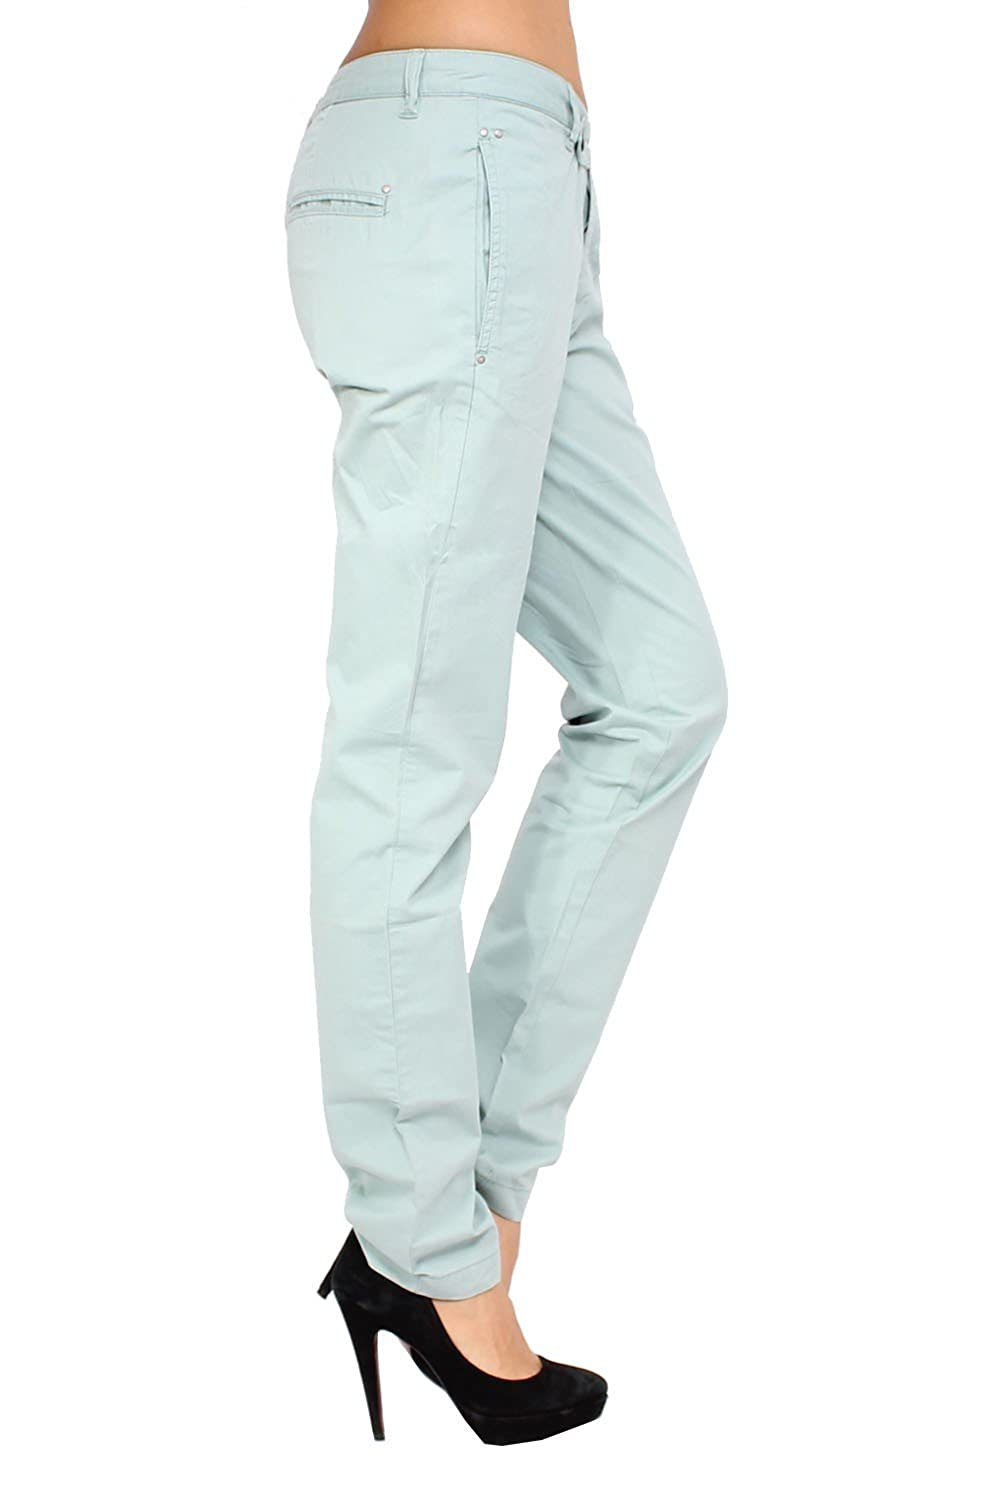 DIESEL - Women's Trousers PEYTY